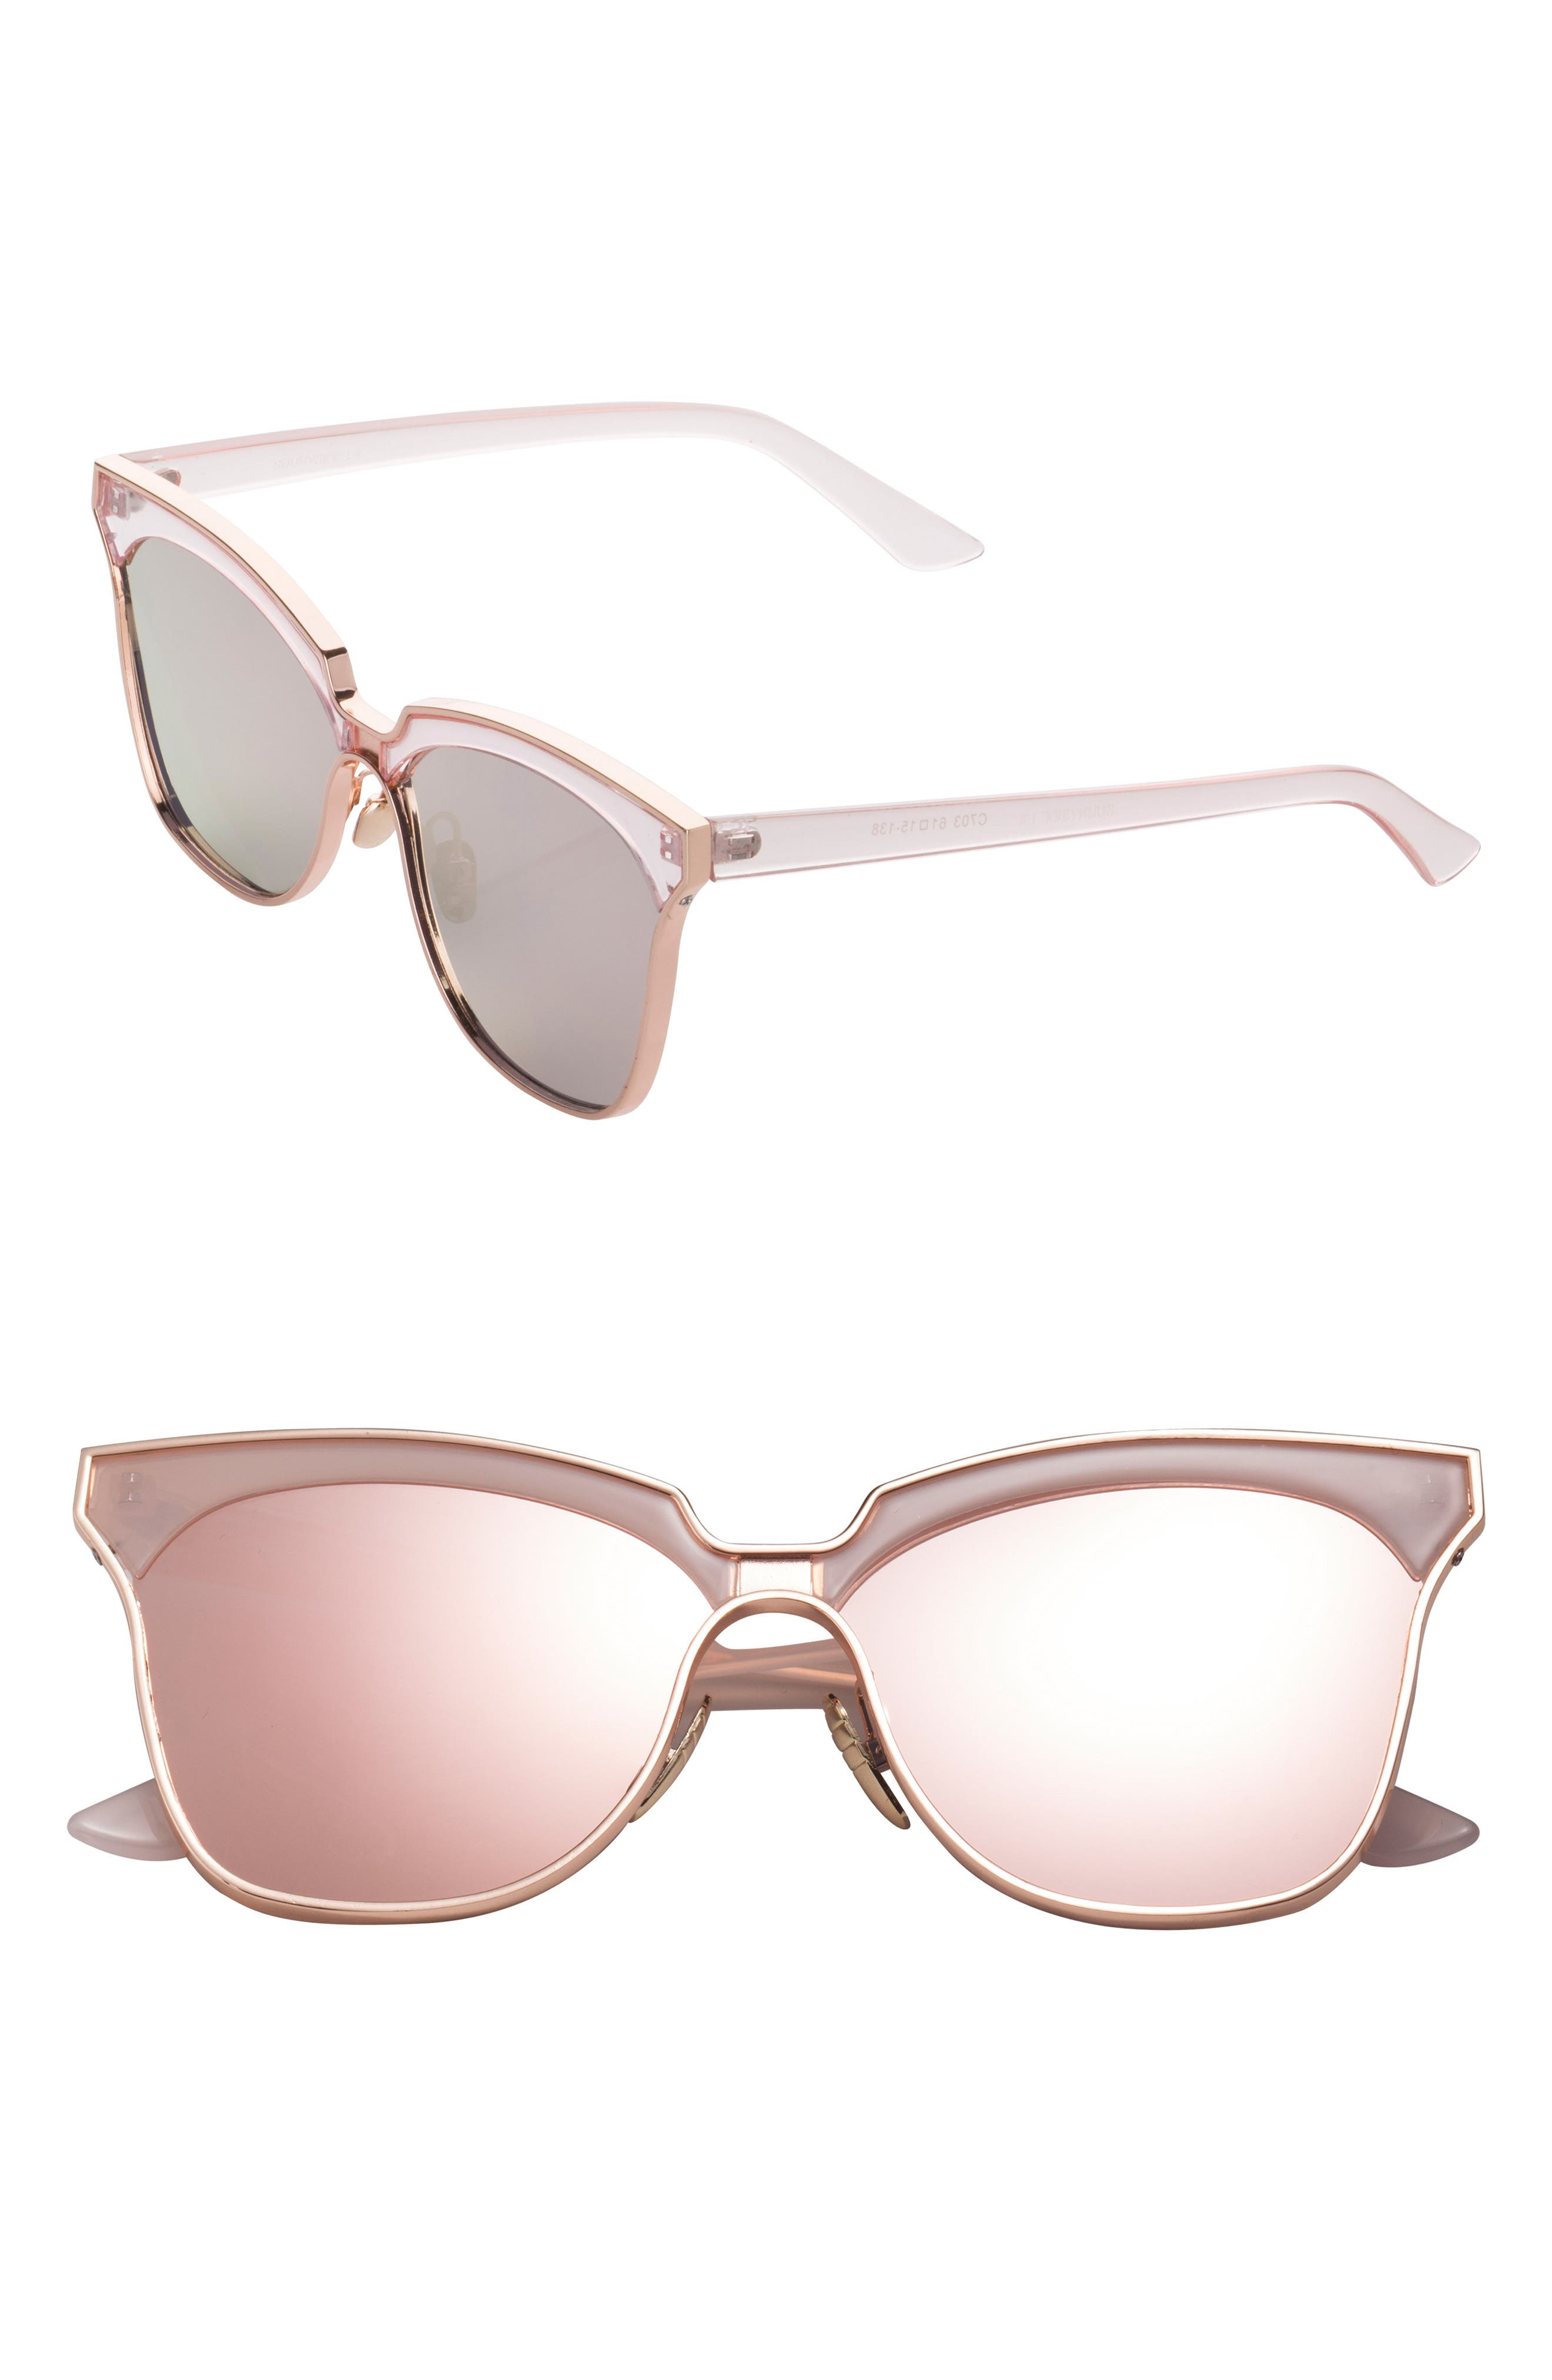 SunnySide LA 61mm Mirorred Butterfly Sunglasses